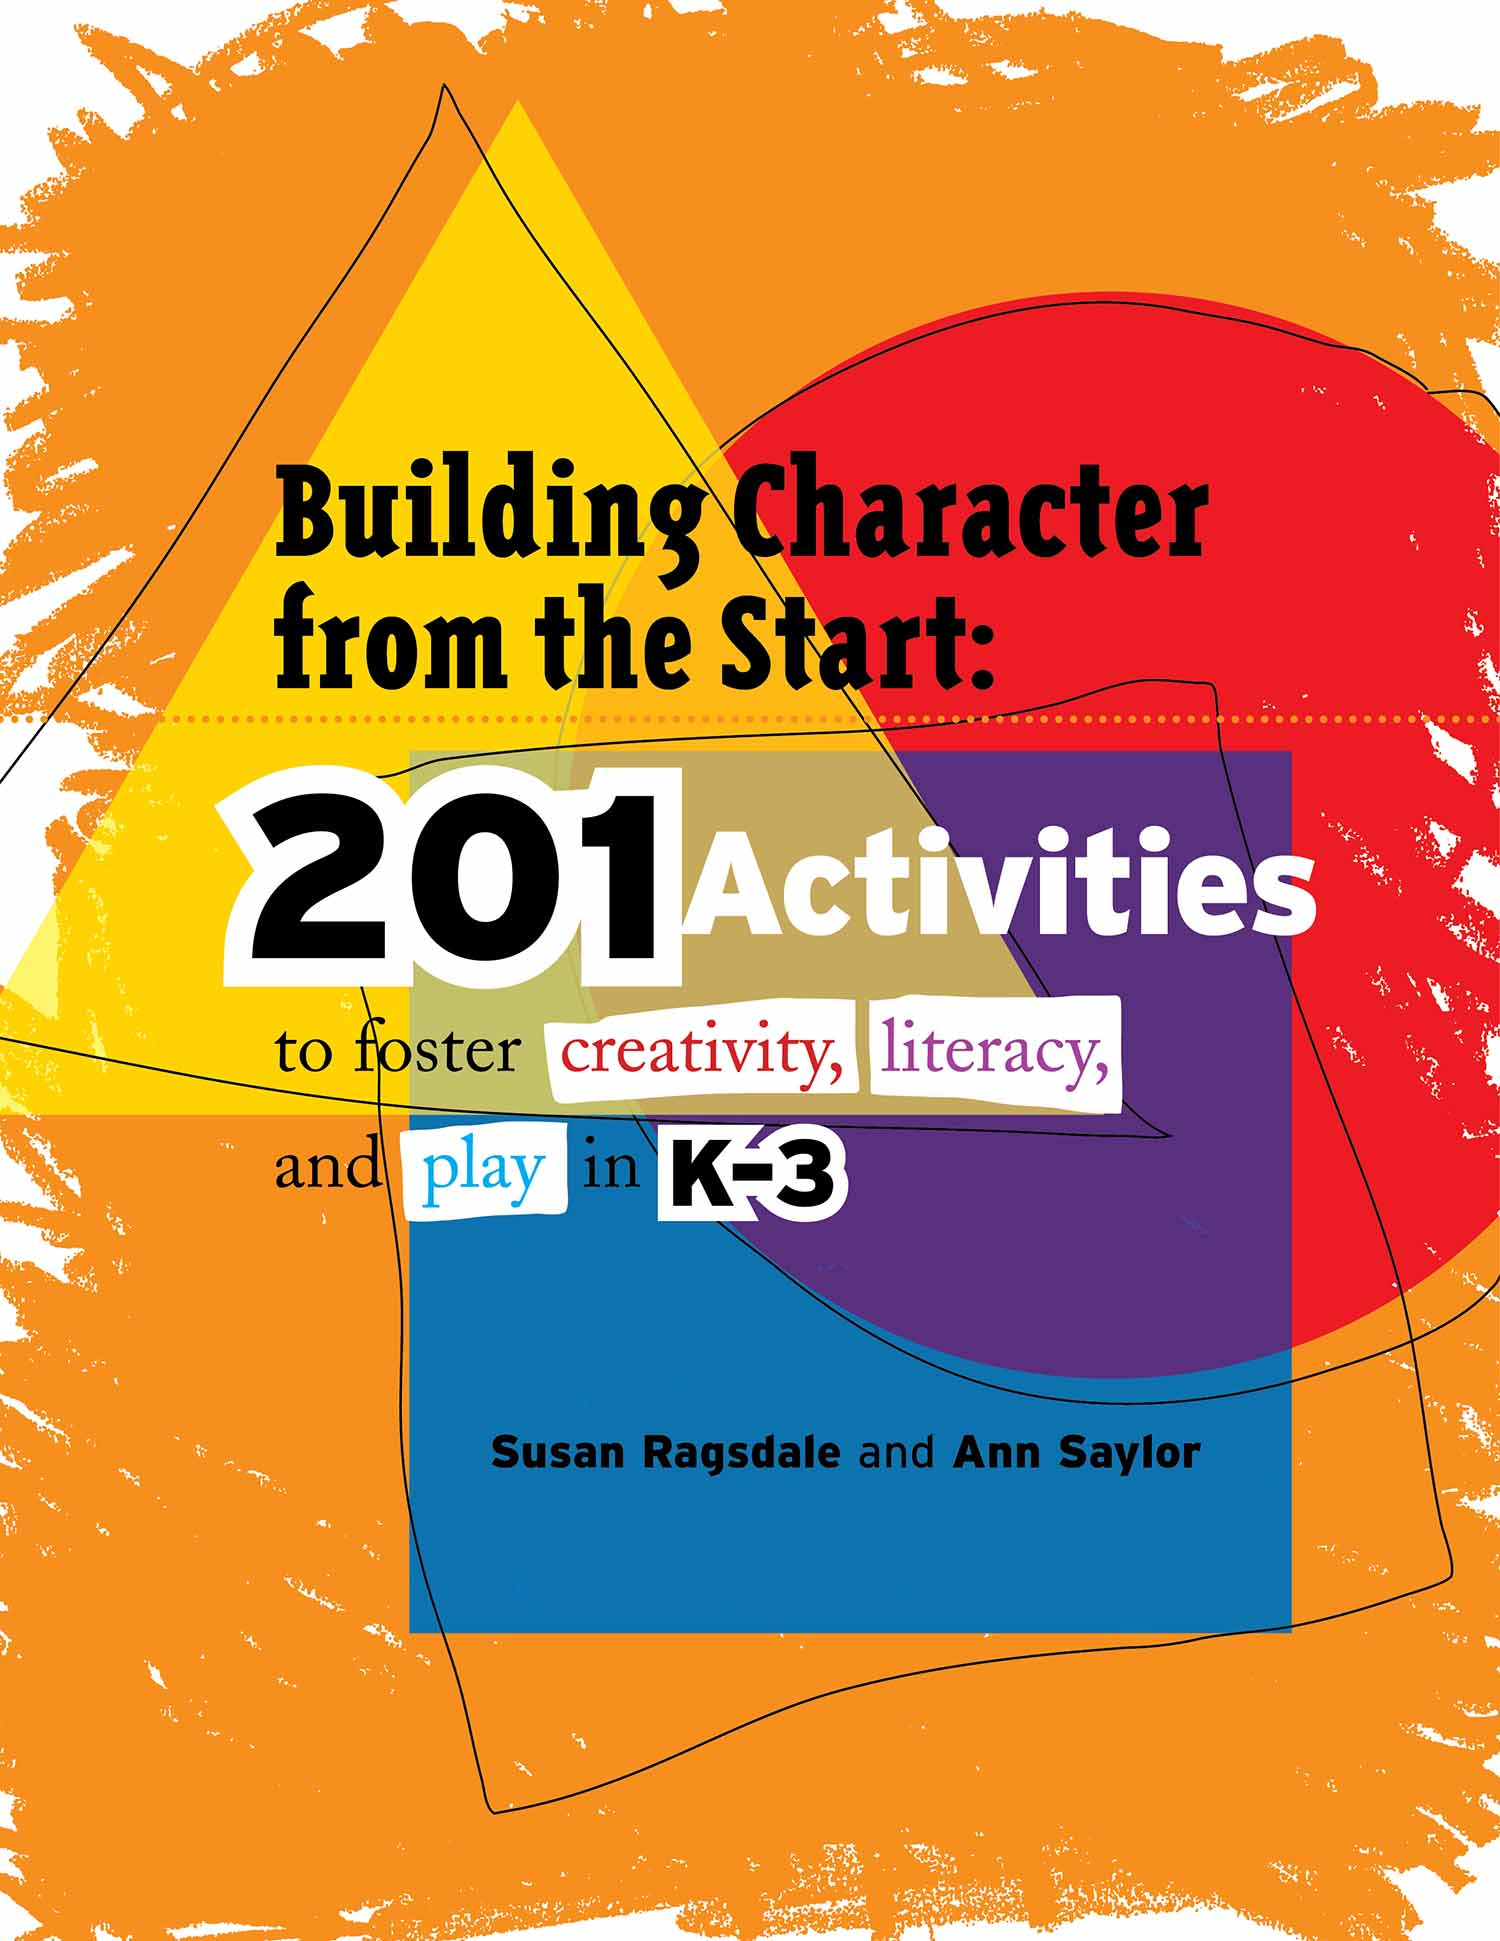 Building Character cover.jpg